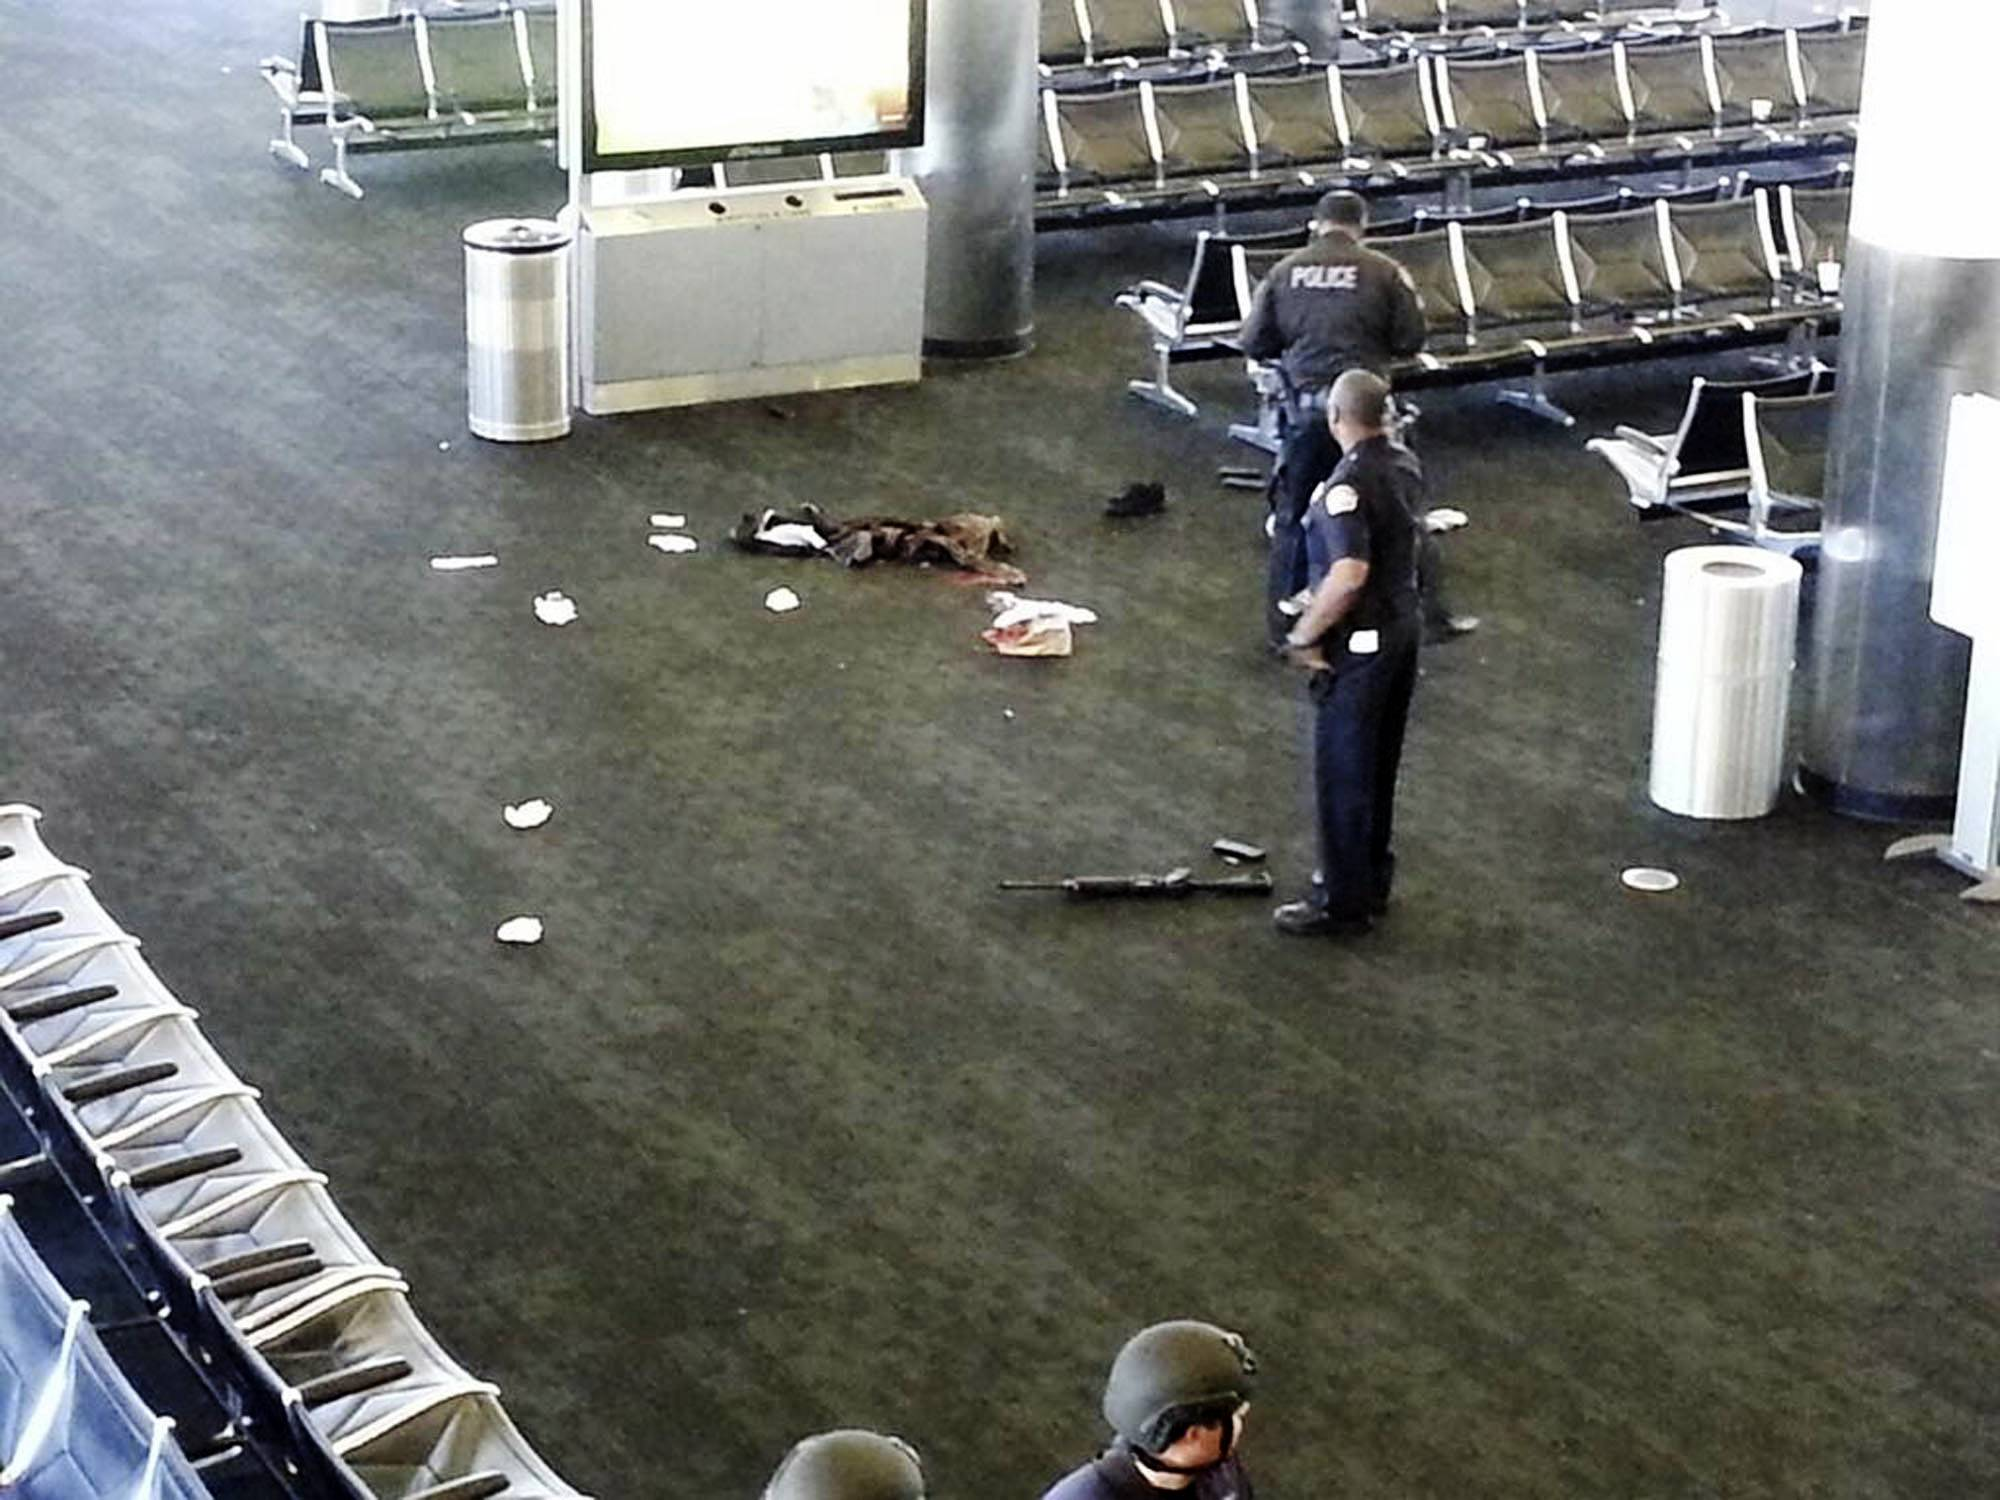 FILE - In this Nov. 1, 2013 file photo provided to the AP, which has been authenticated based on its contents and other AP reporting, police officers stand near a weapon at the Los Angeles International Airport after a gunman opened fire in the terminal, killing one person and wounding several others. A report on the emergency response to the shooting cites serious shortcomings in communication between agencies that left major commanders in the dark and a long lag in establishing a coordinated response.